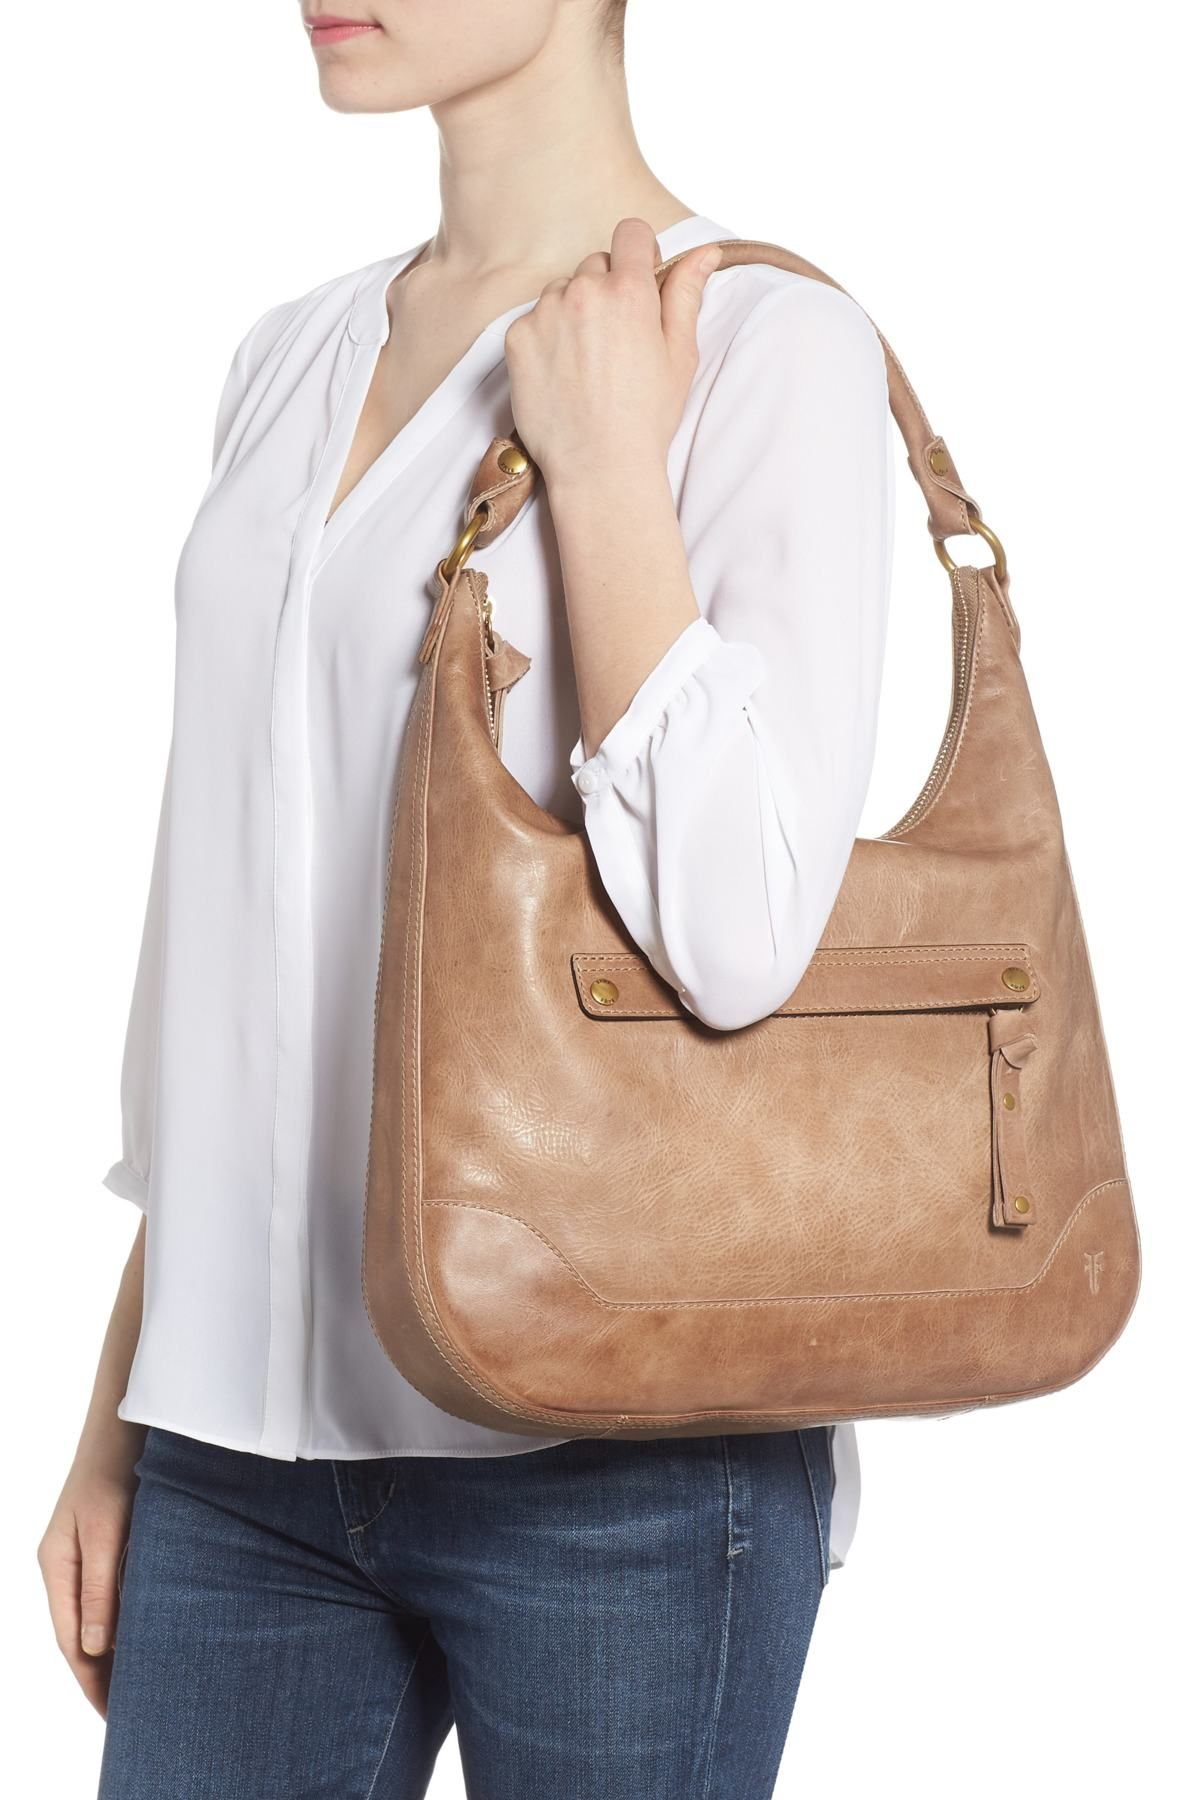 c01954f340d Frye | Melissa Large Leather Hobo | Gift Ideas & Things I Want ...